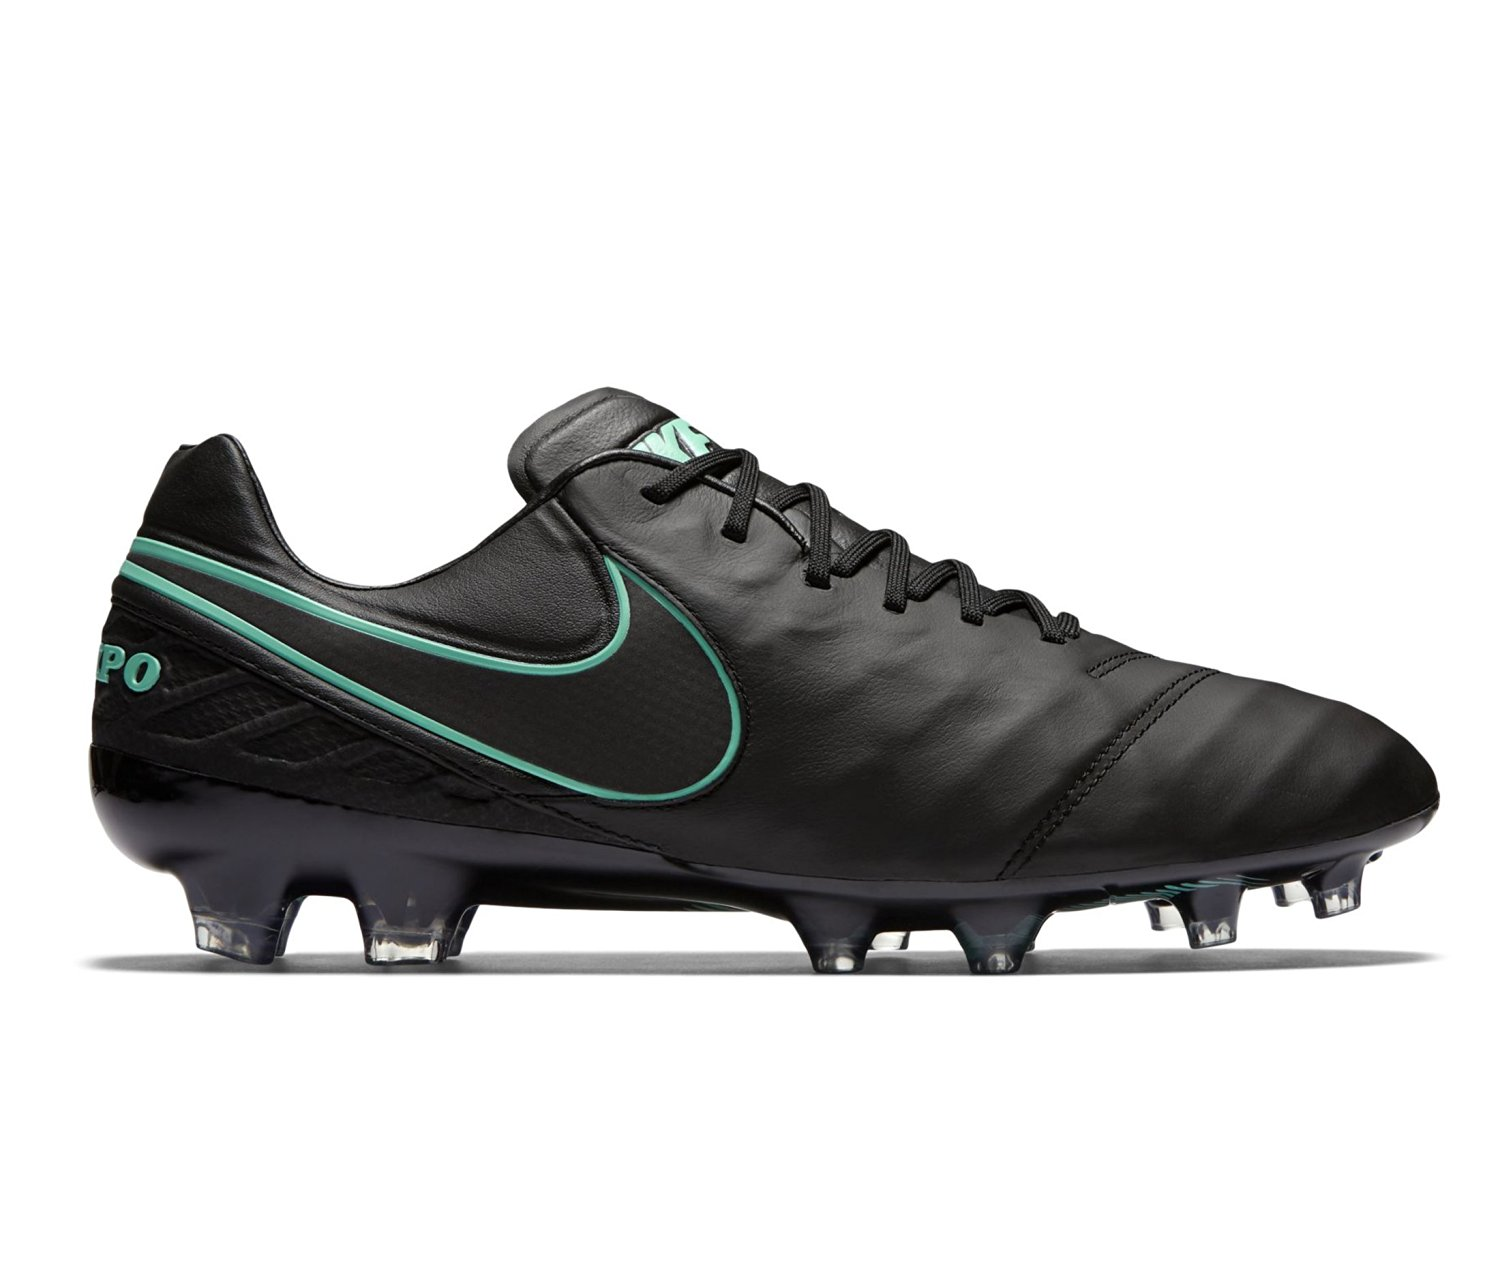 the latest 2a5a7 ce6a8 Cheap Tiempo Cleats, find Tiempo Cleats deals on line at ...